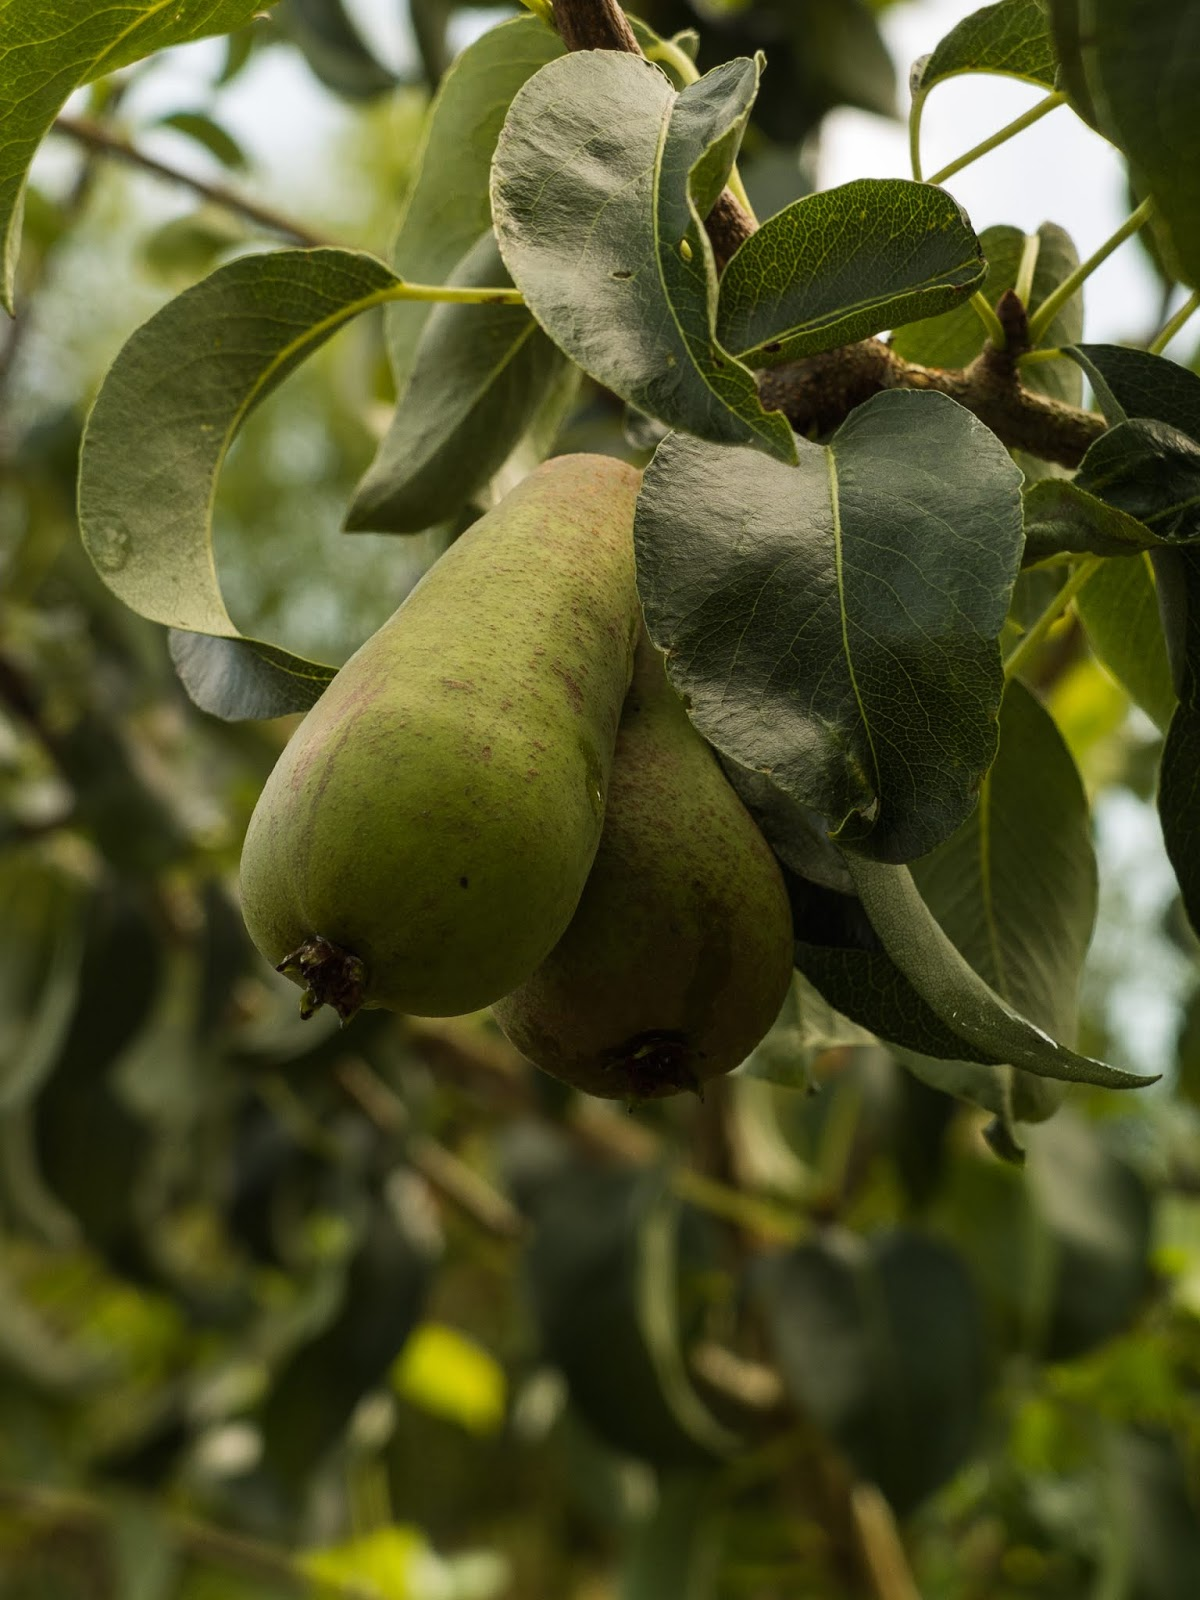 A close up of two pears growing on a tree.